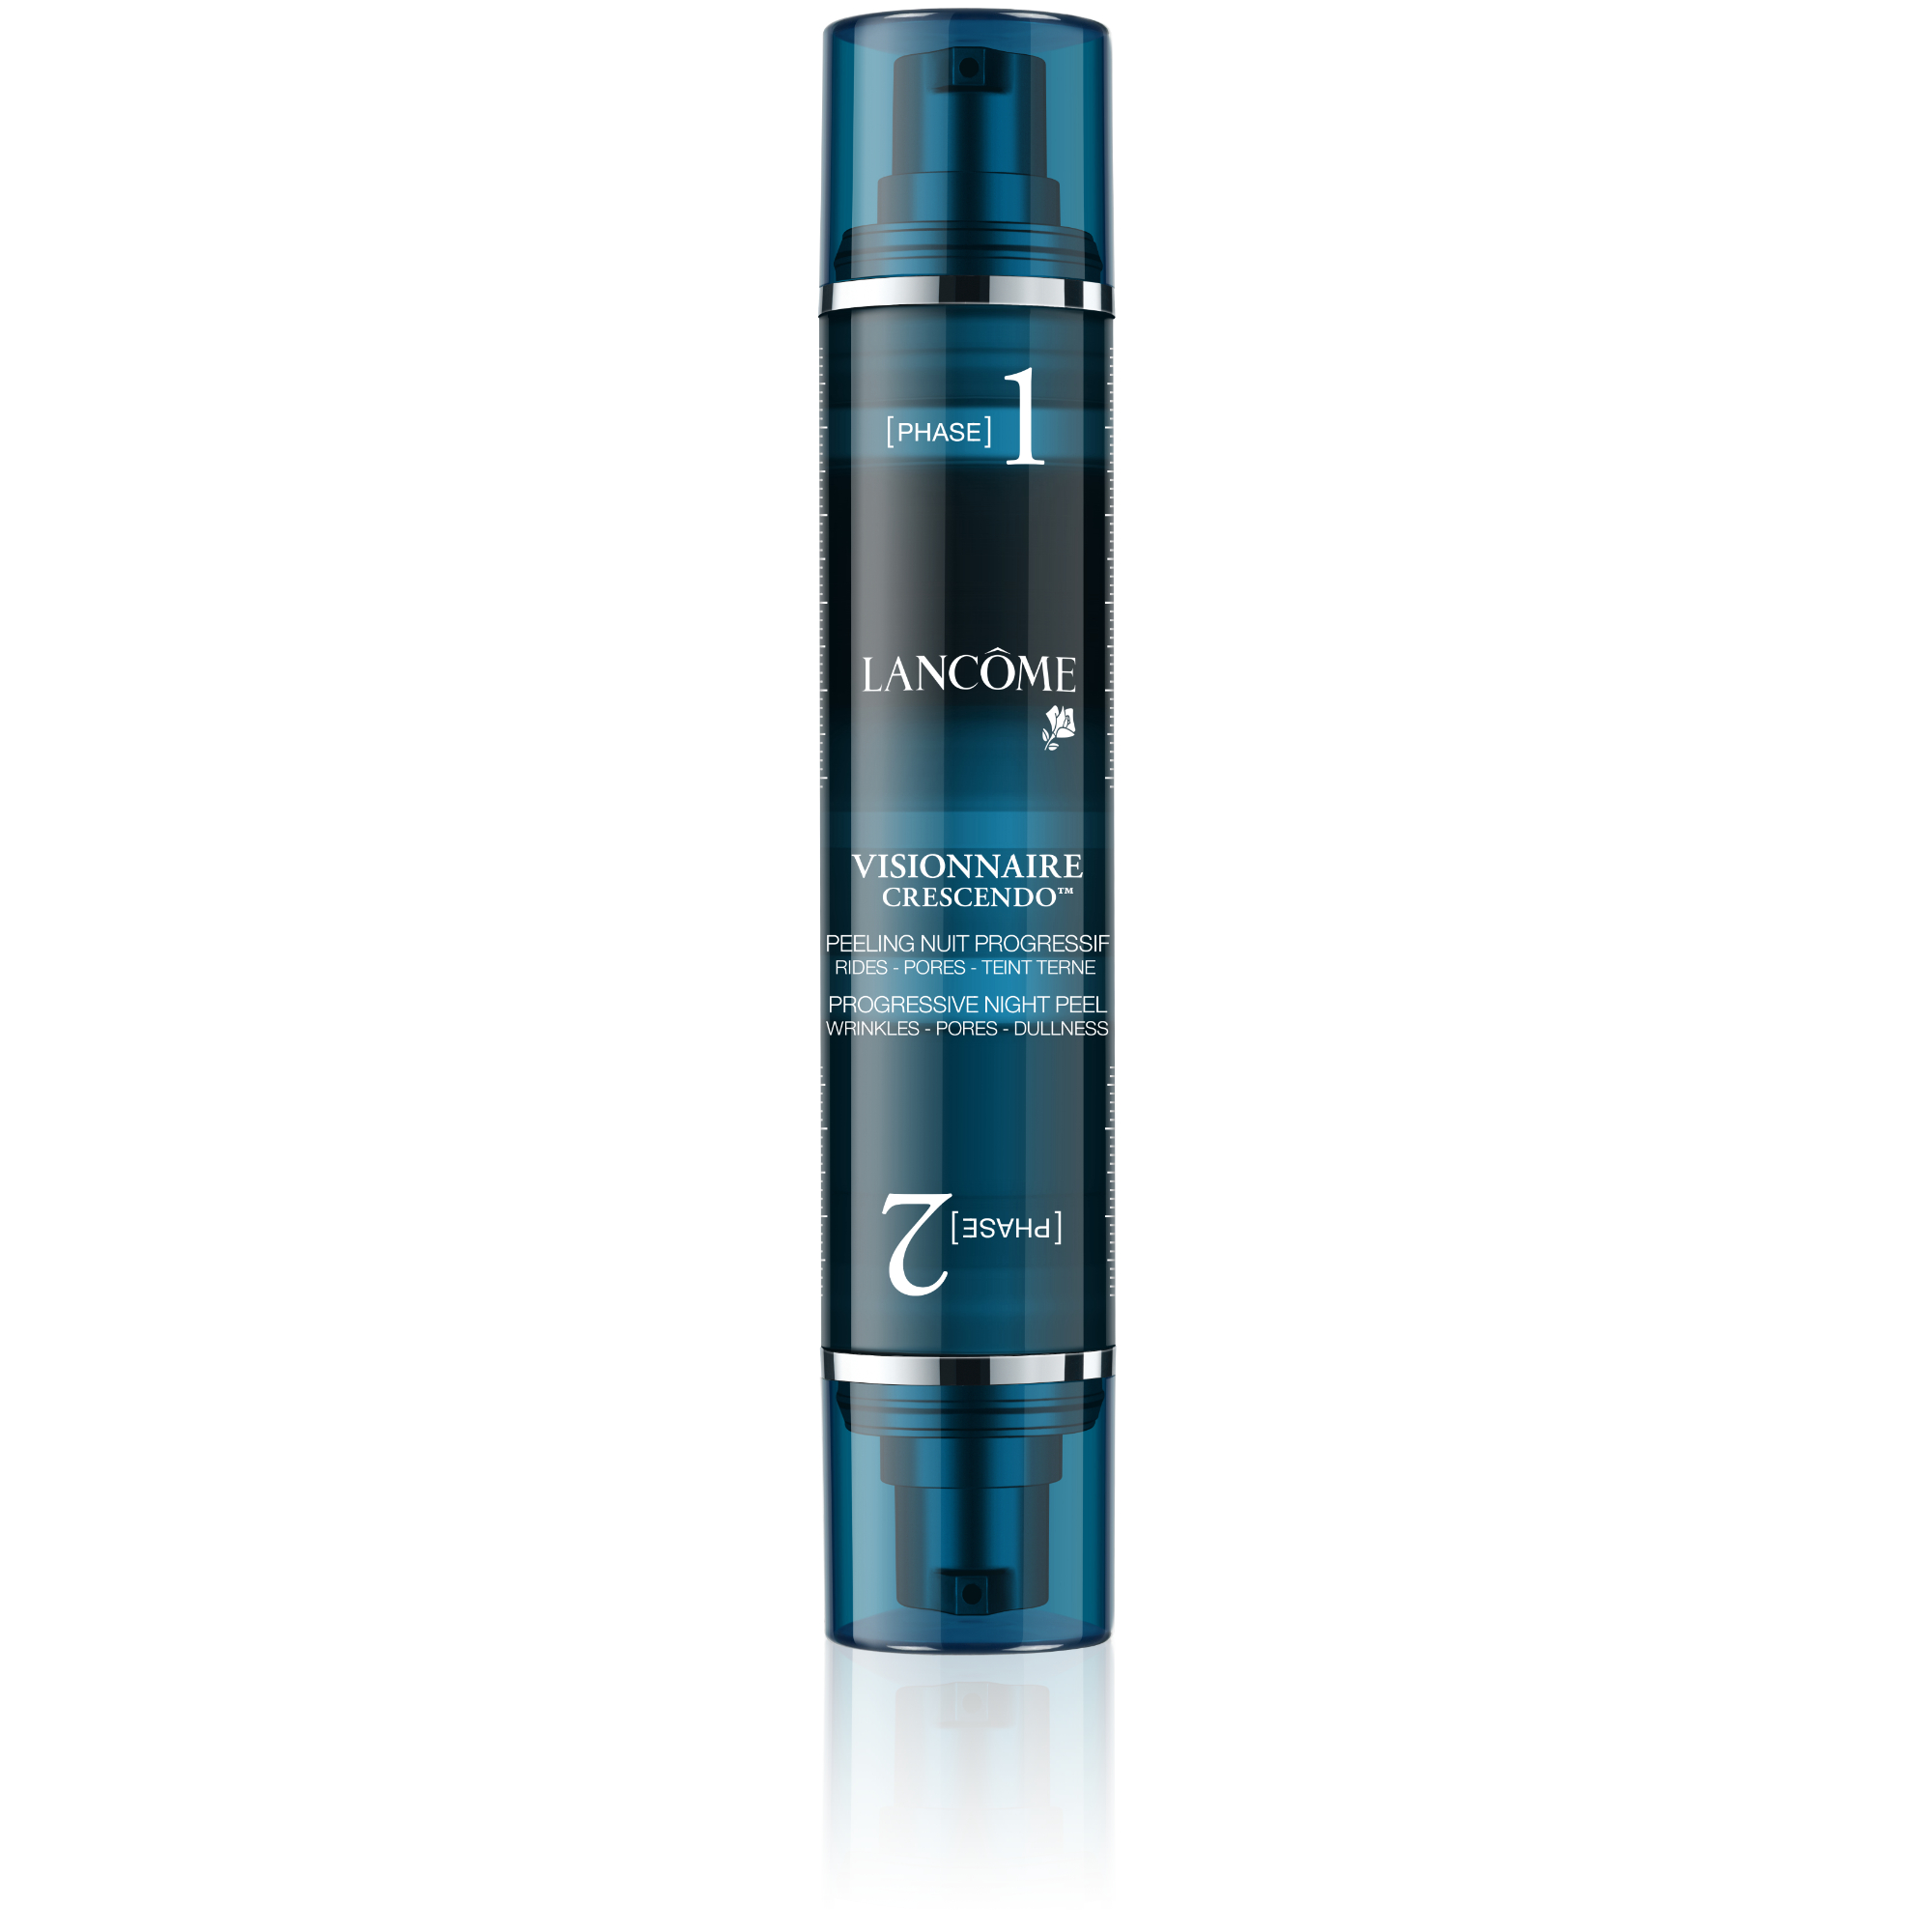 Visionnaire Crescendo Progressive Night Peel